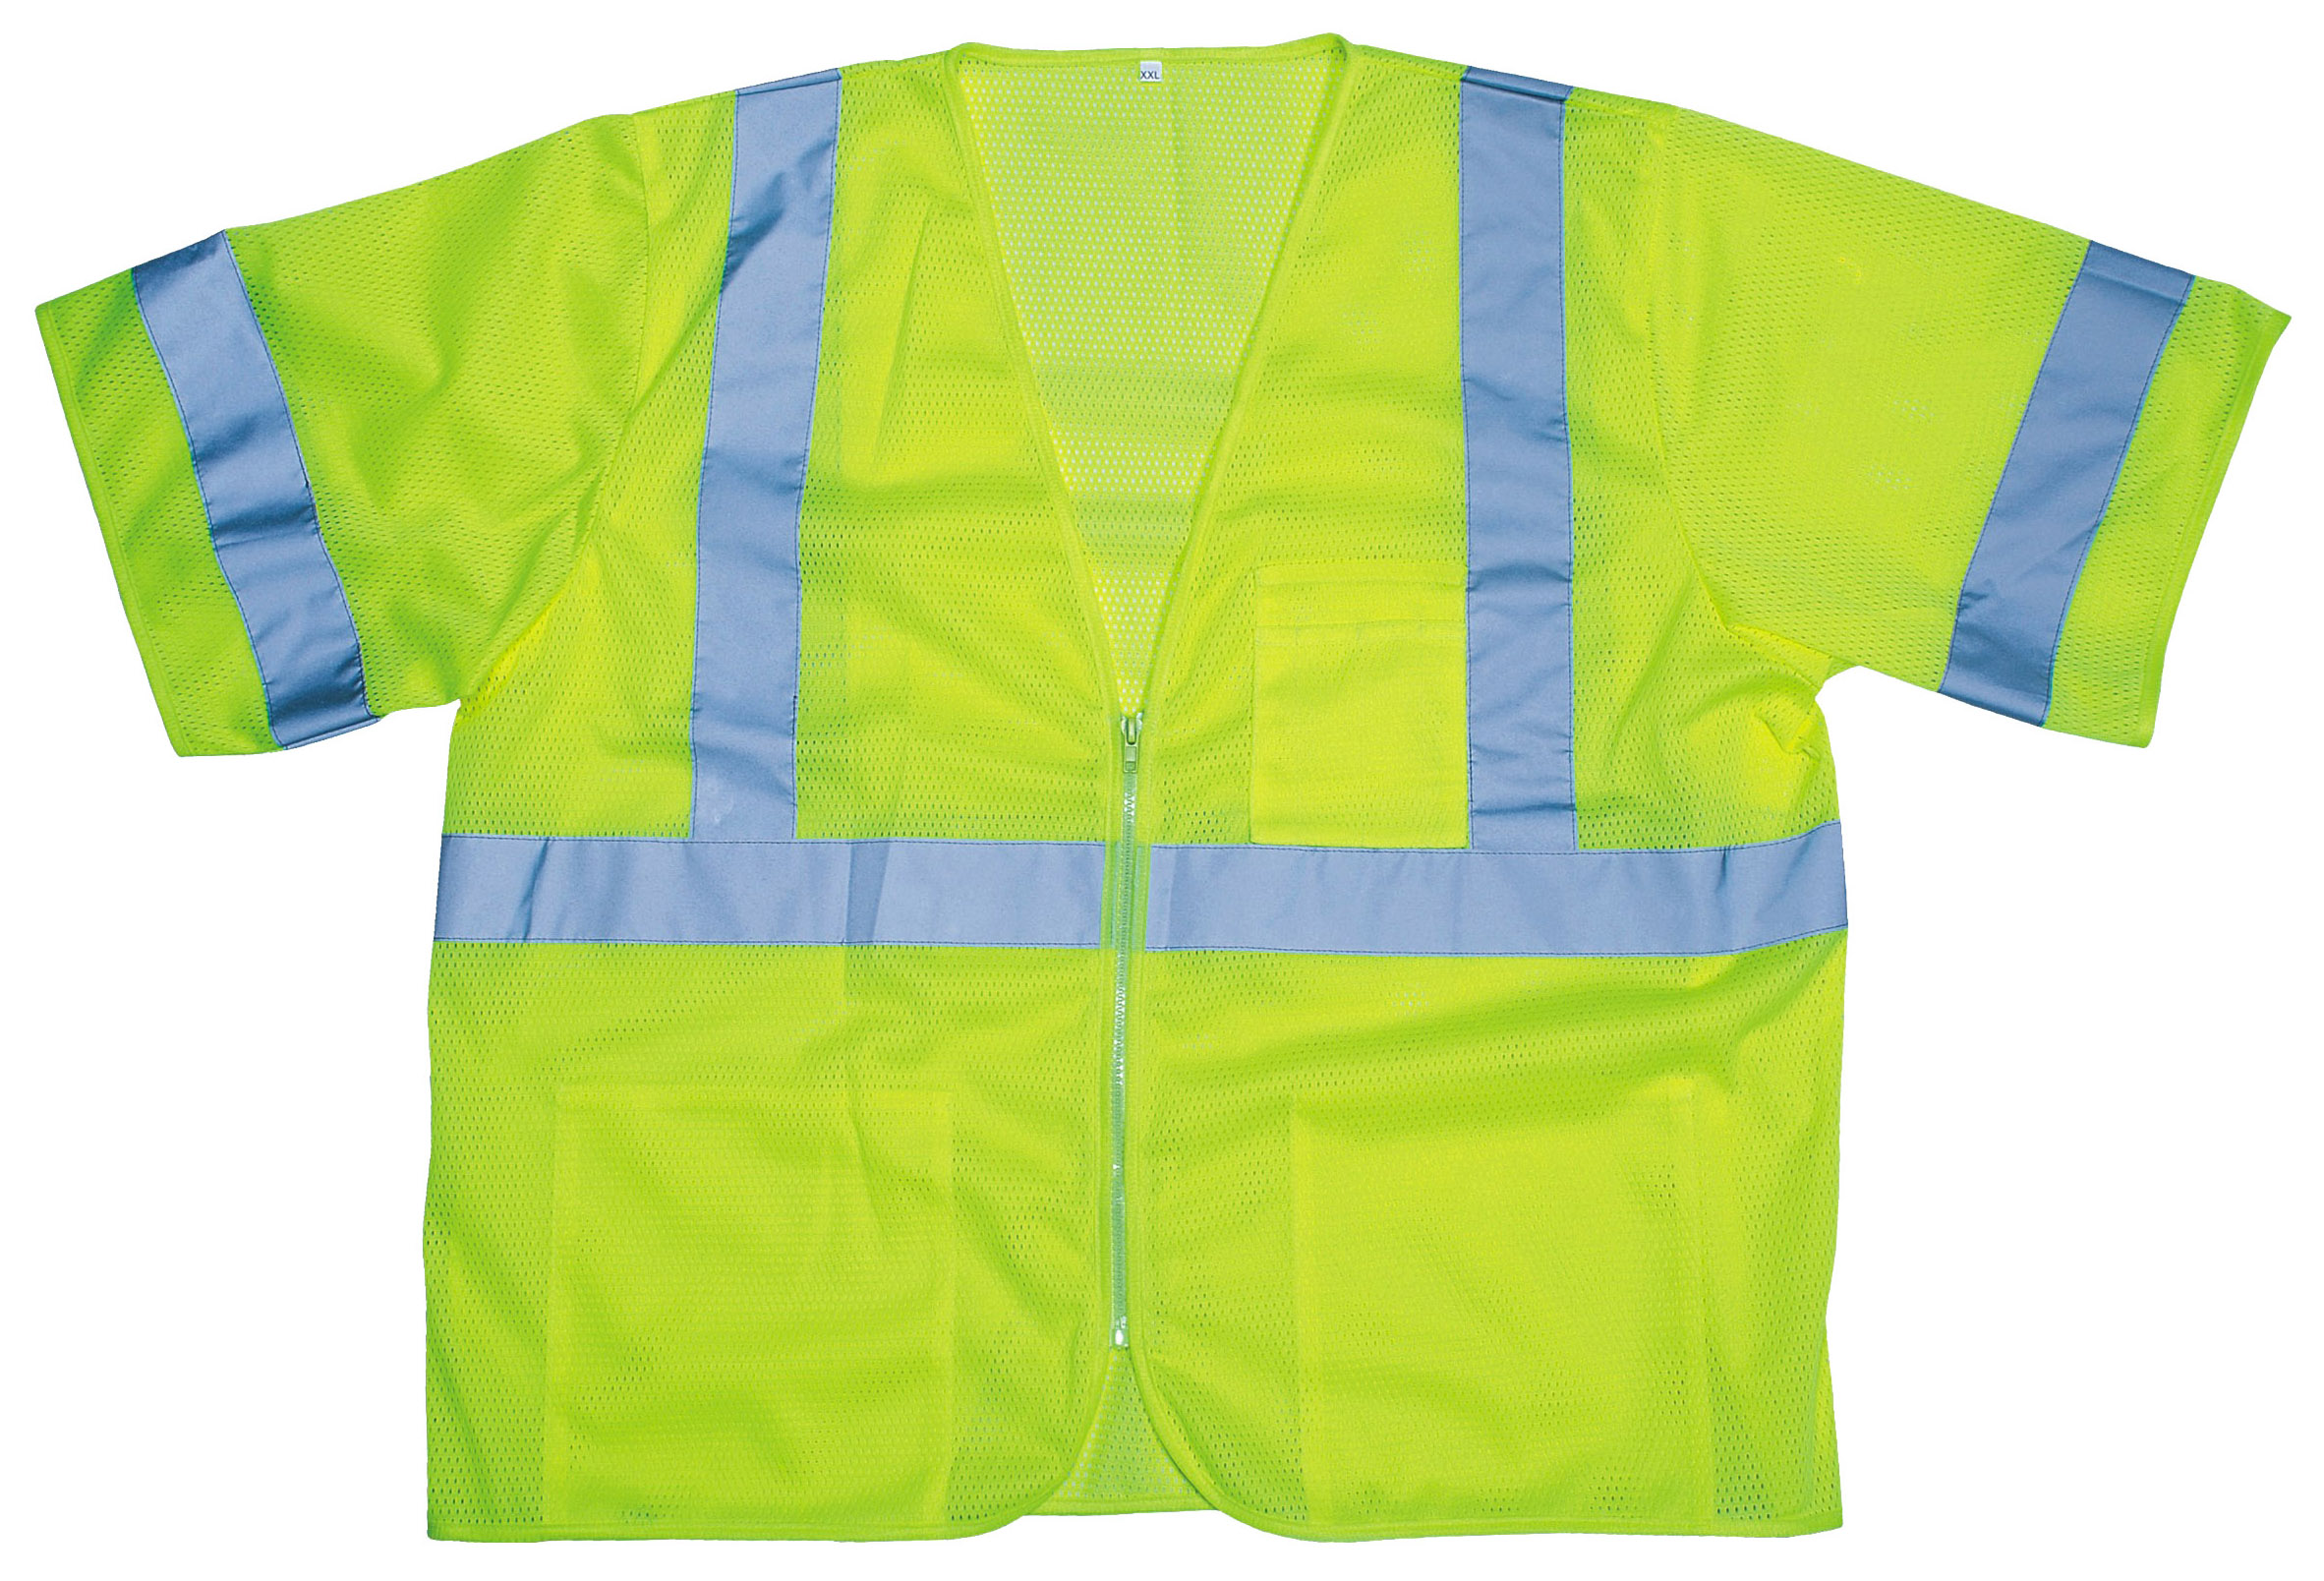 V3001 Cor-Brite Type R, Class 3 High Visibility Vest, Polyester Mesh, Lime, XXX - Large - Power Concrete Screed Job Package